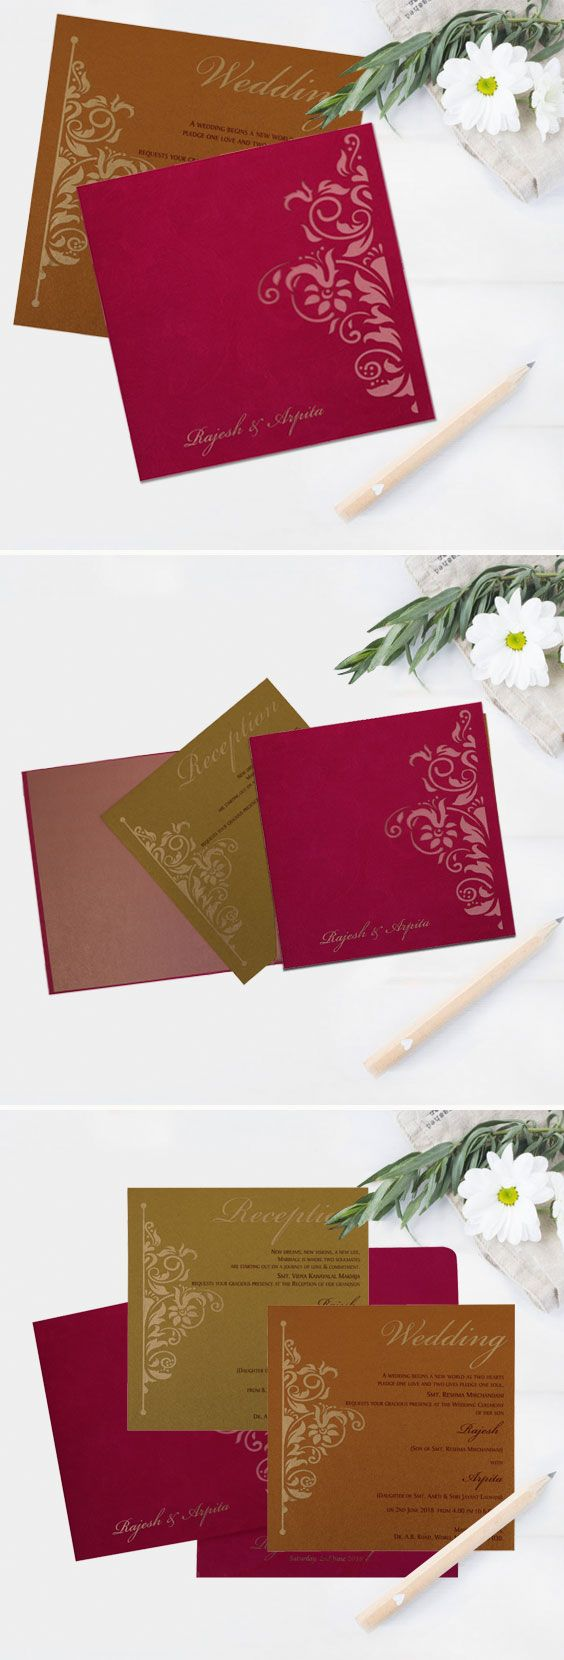 The 88 best Indian Wedding Invitations | 123WeddingCards images on ...